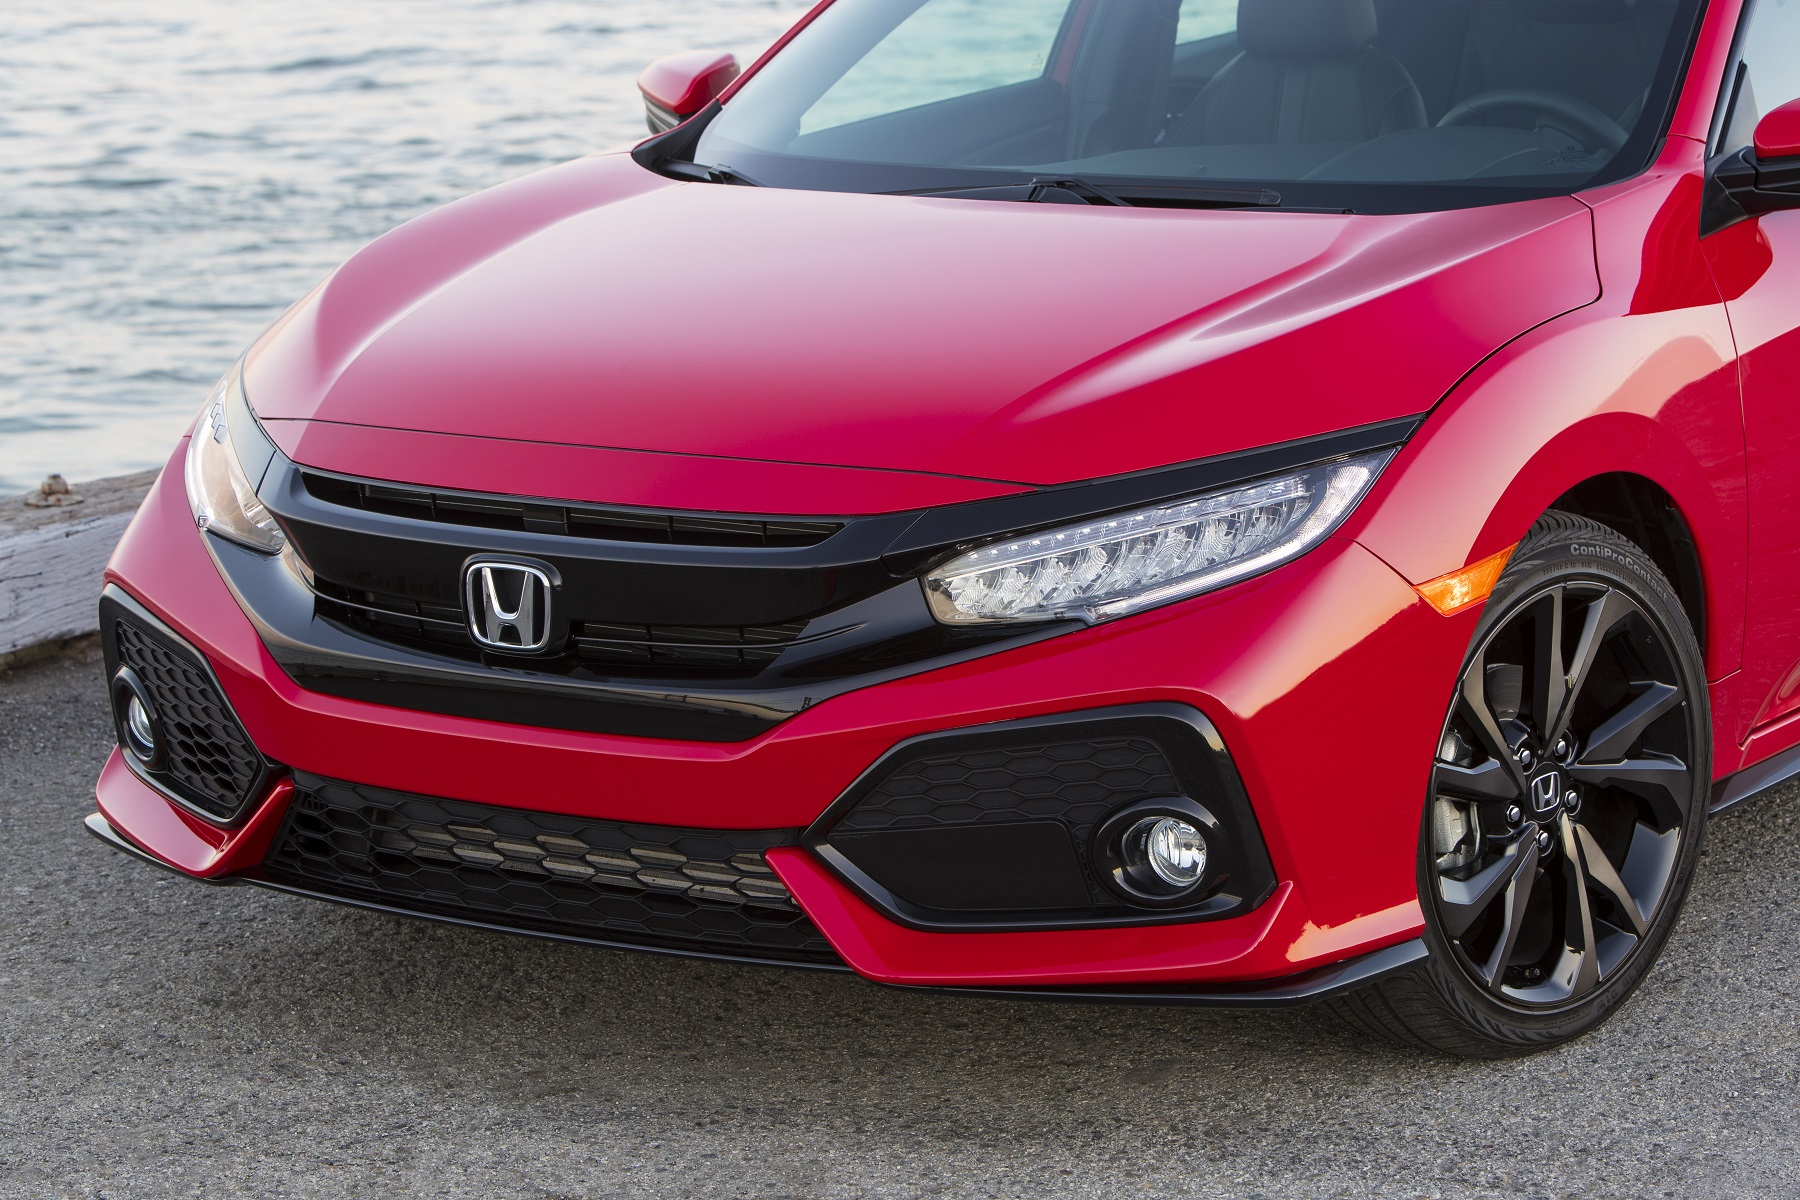 Manufacturer photo: The 2017 Honda Civic Hatchback combines striking, Euro-inspired styling and five-door versatility with the Civic's world-class driving dynamics and Honda direct-injected turbo engine technology